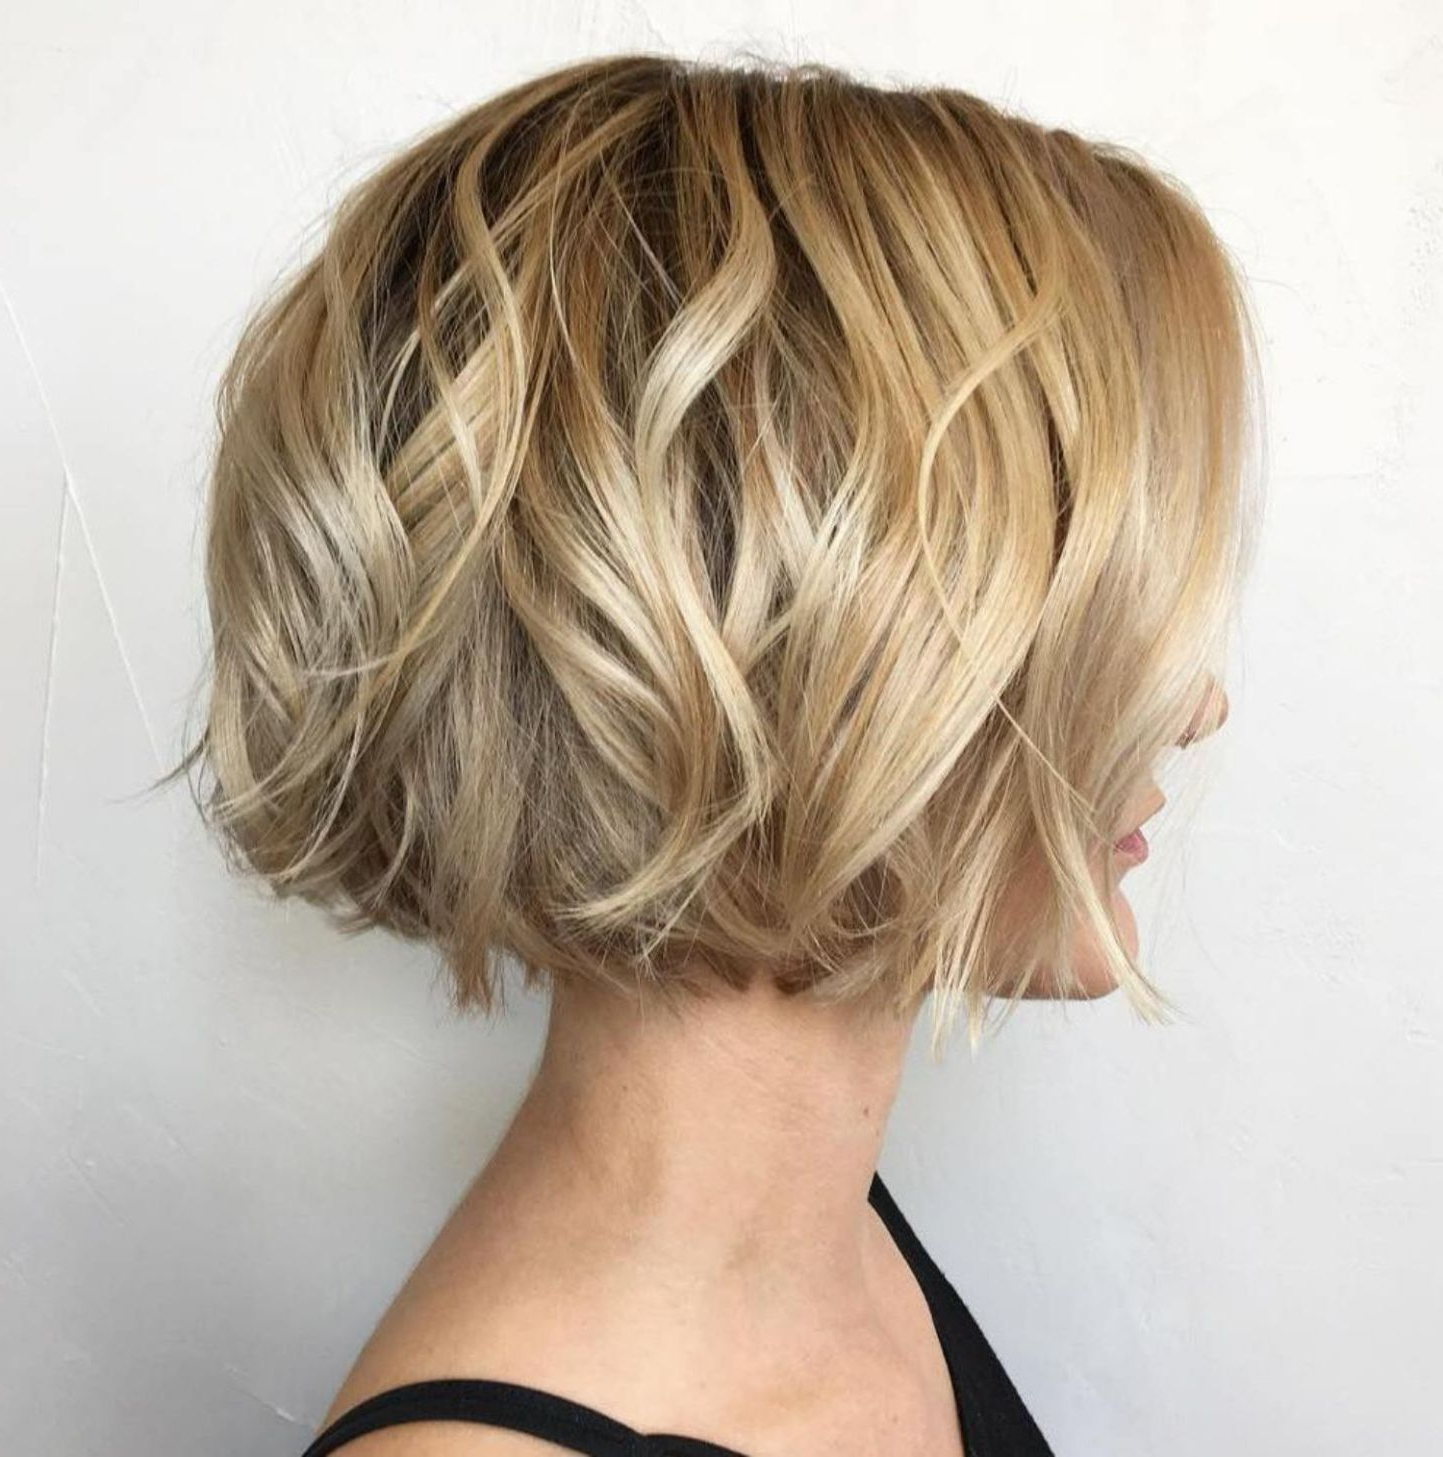 Most Popular One Length Short Blonde Bob Hairstyles Inside 100 Mind Blowing Short Hairstyles For Fine Hair (View 15 of 20)